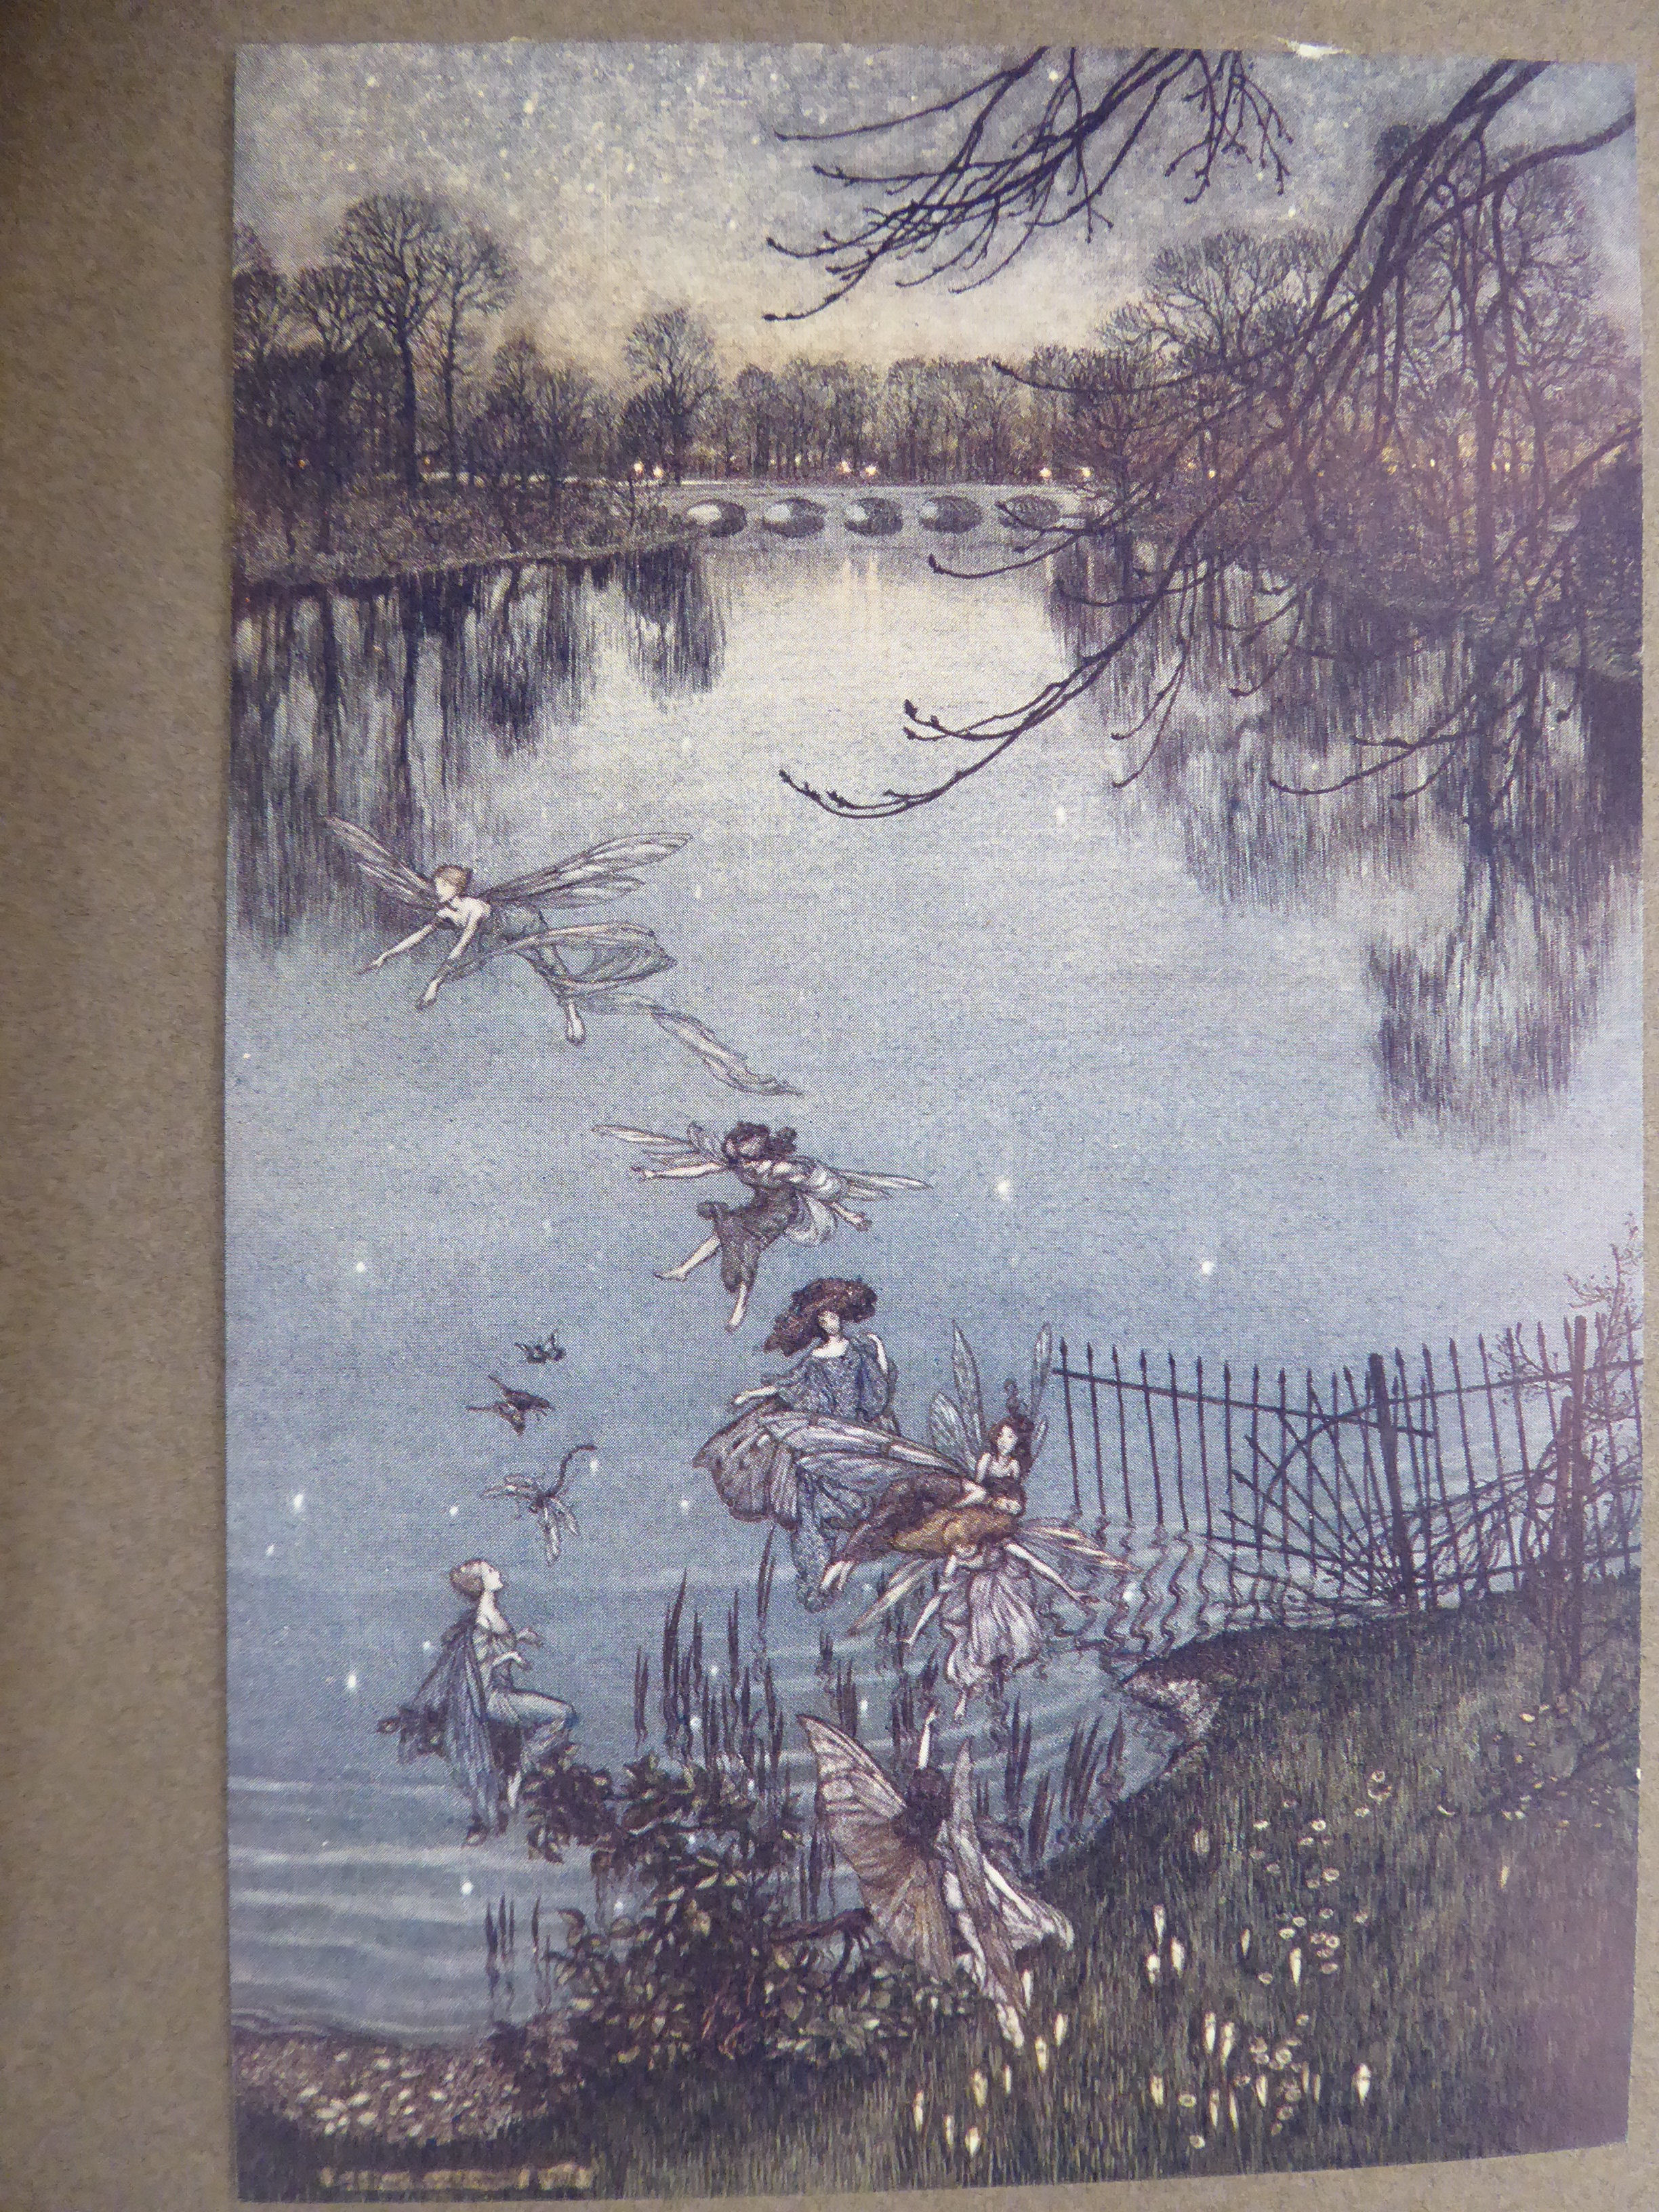 Lot 44 - Book: 'Peter Pan in Kensington Gardens' by JM Barrie with illustrations by Arthur Rackman